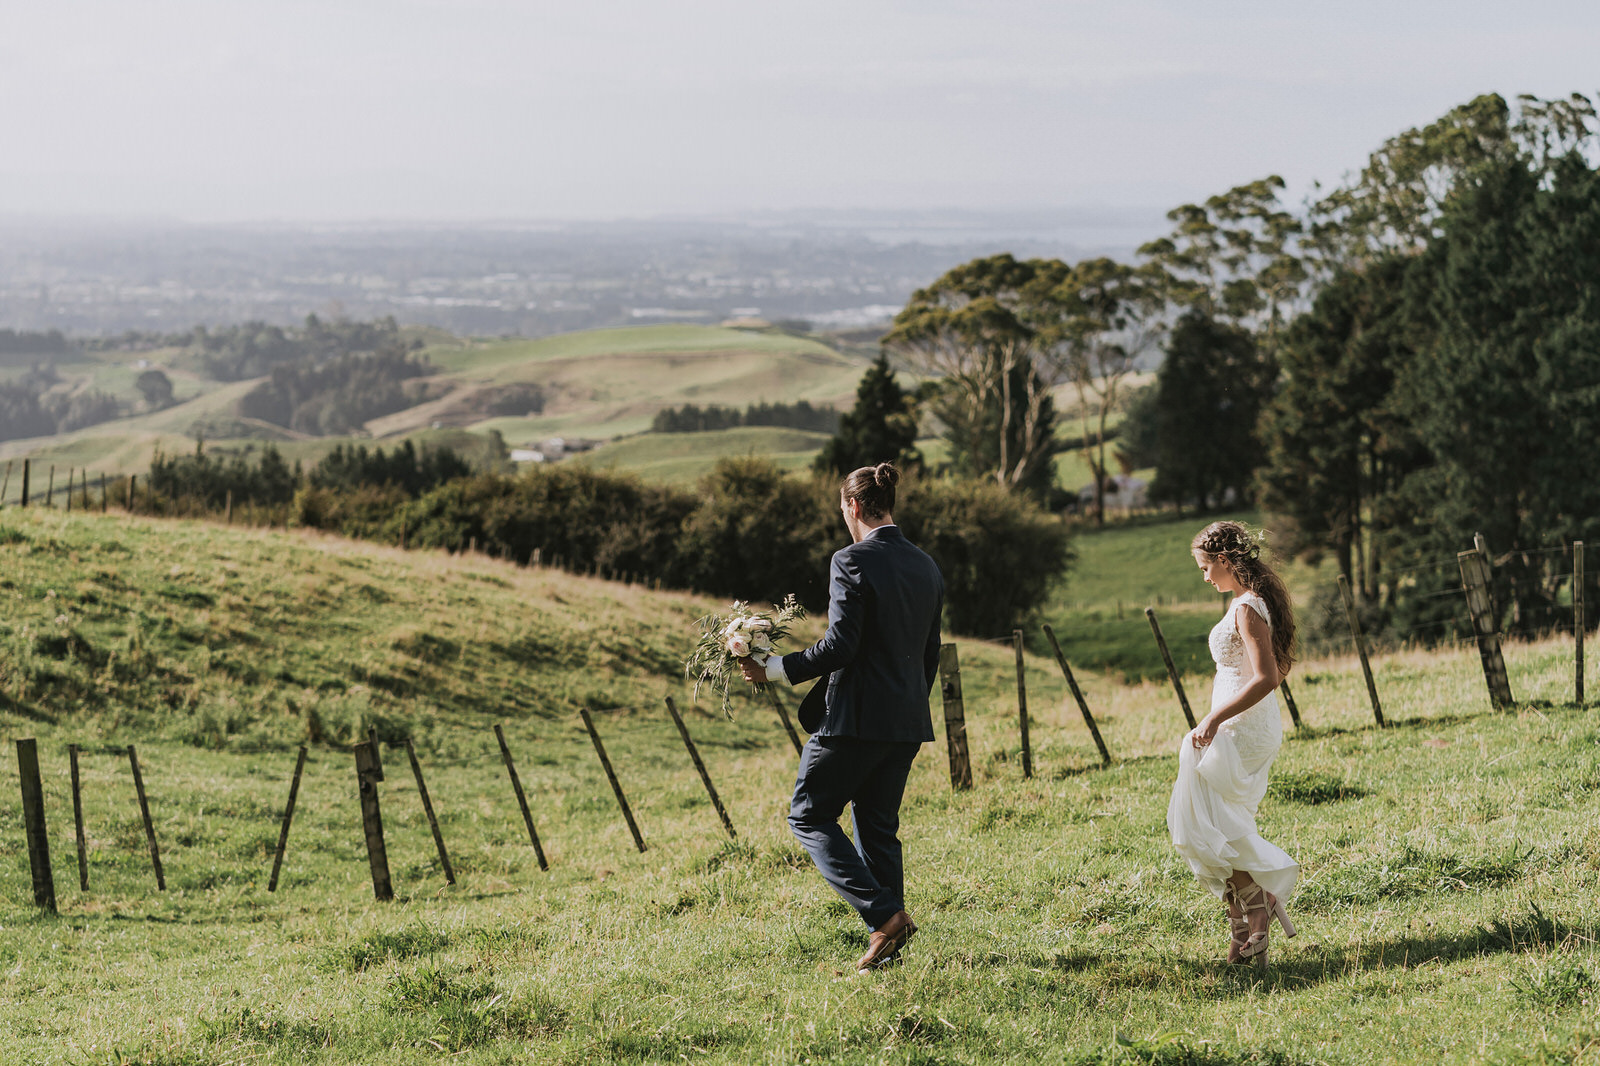 newfound-v-z-eagle-ridge-estate-tauranga-wedding-574